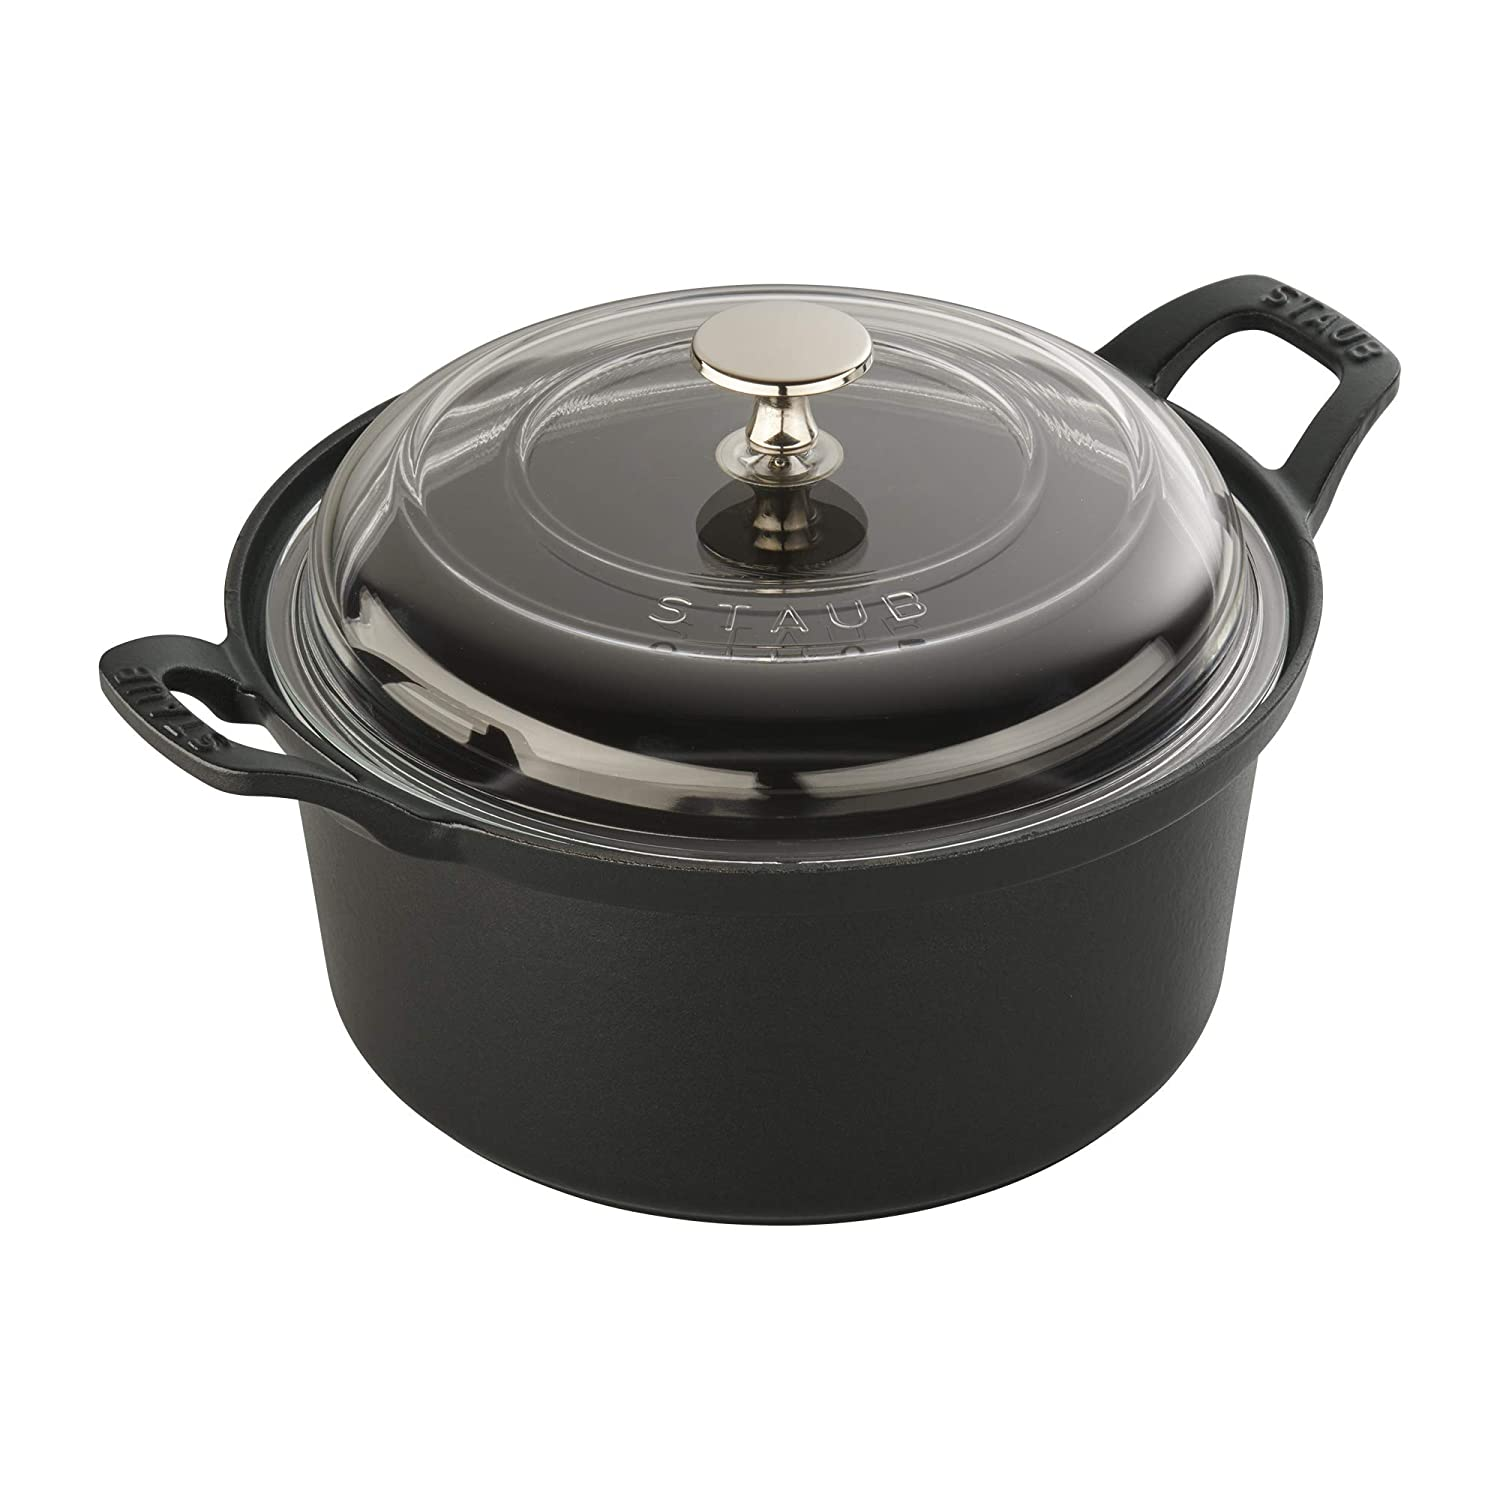 STAUB 11502023 Cast Iron Round La Coquette with Glass Lid, 2.75-qt, Matte Black